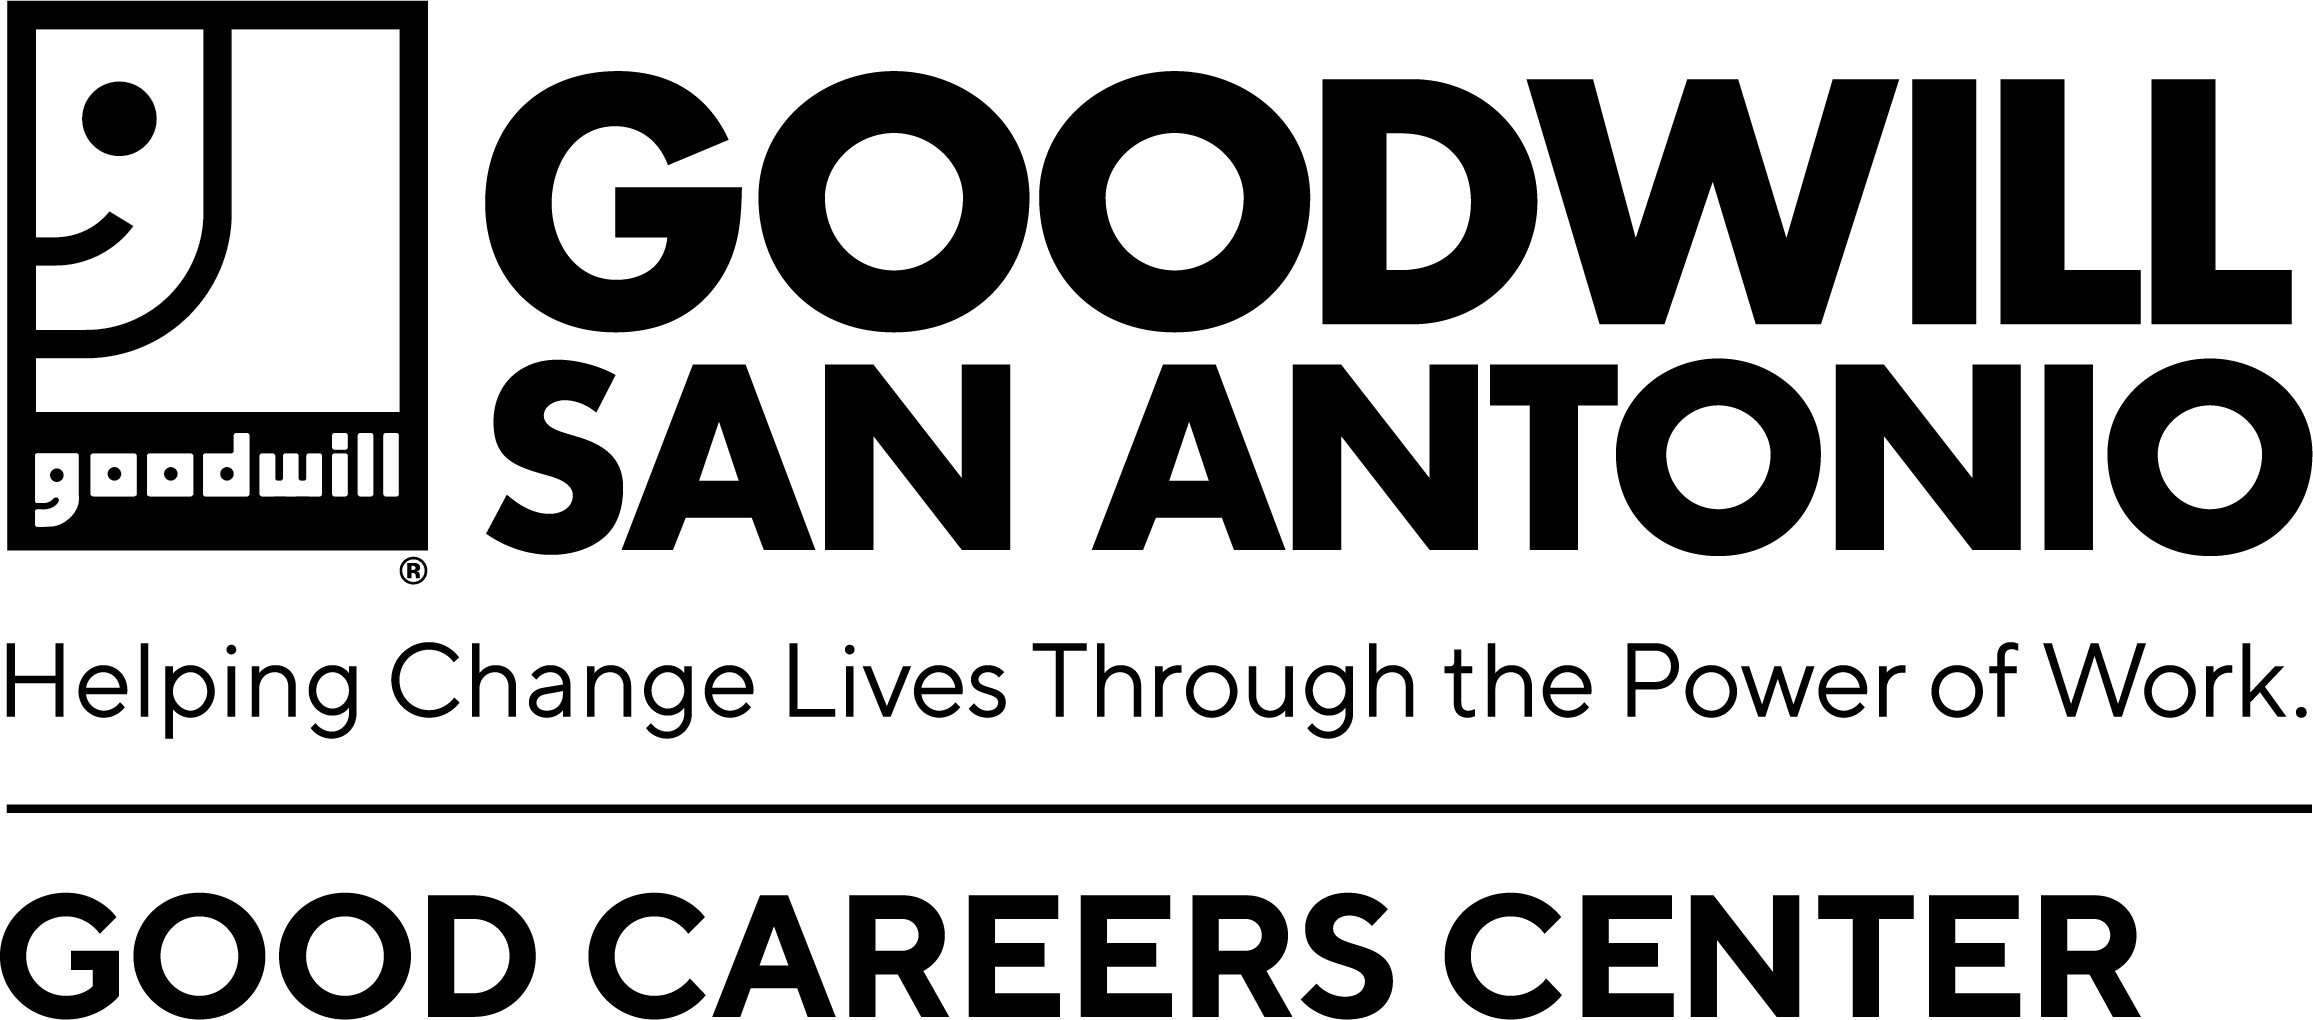 Good Careers Center